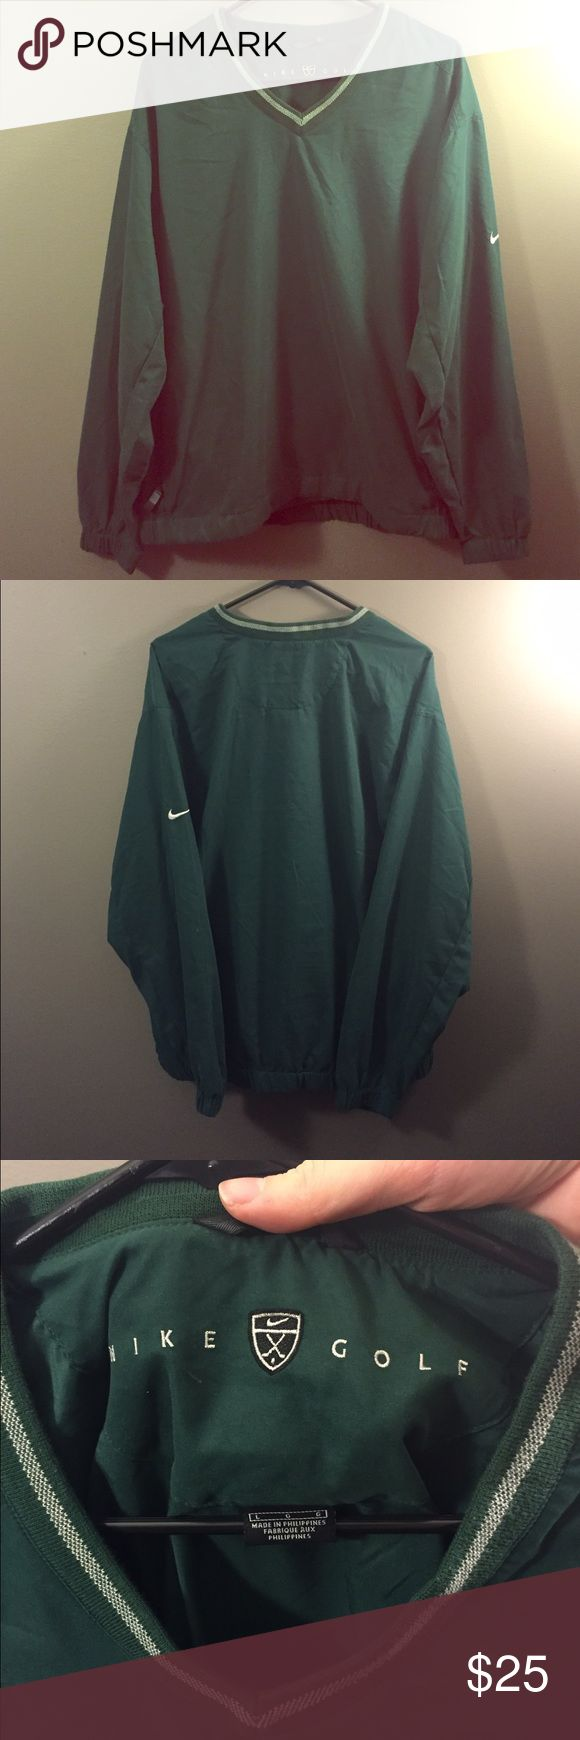 Nike Large Dark Green Golf Rain Jacket NWOT Brand new without tags. Thank you for looking! Nike Jackets & Coats Raincoats